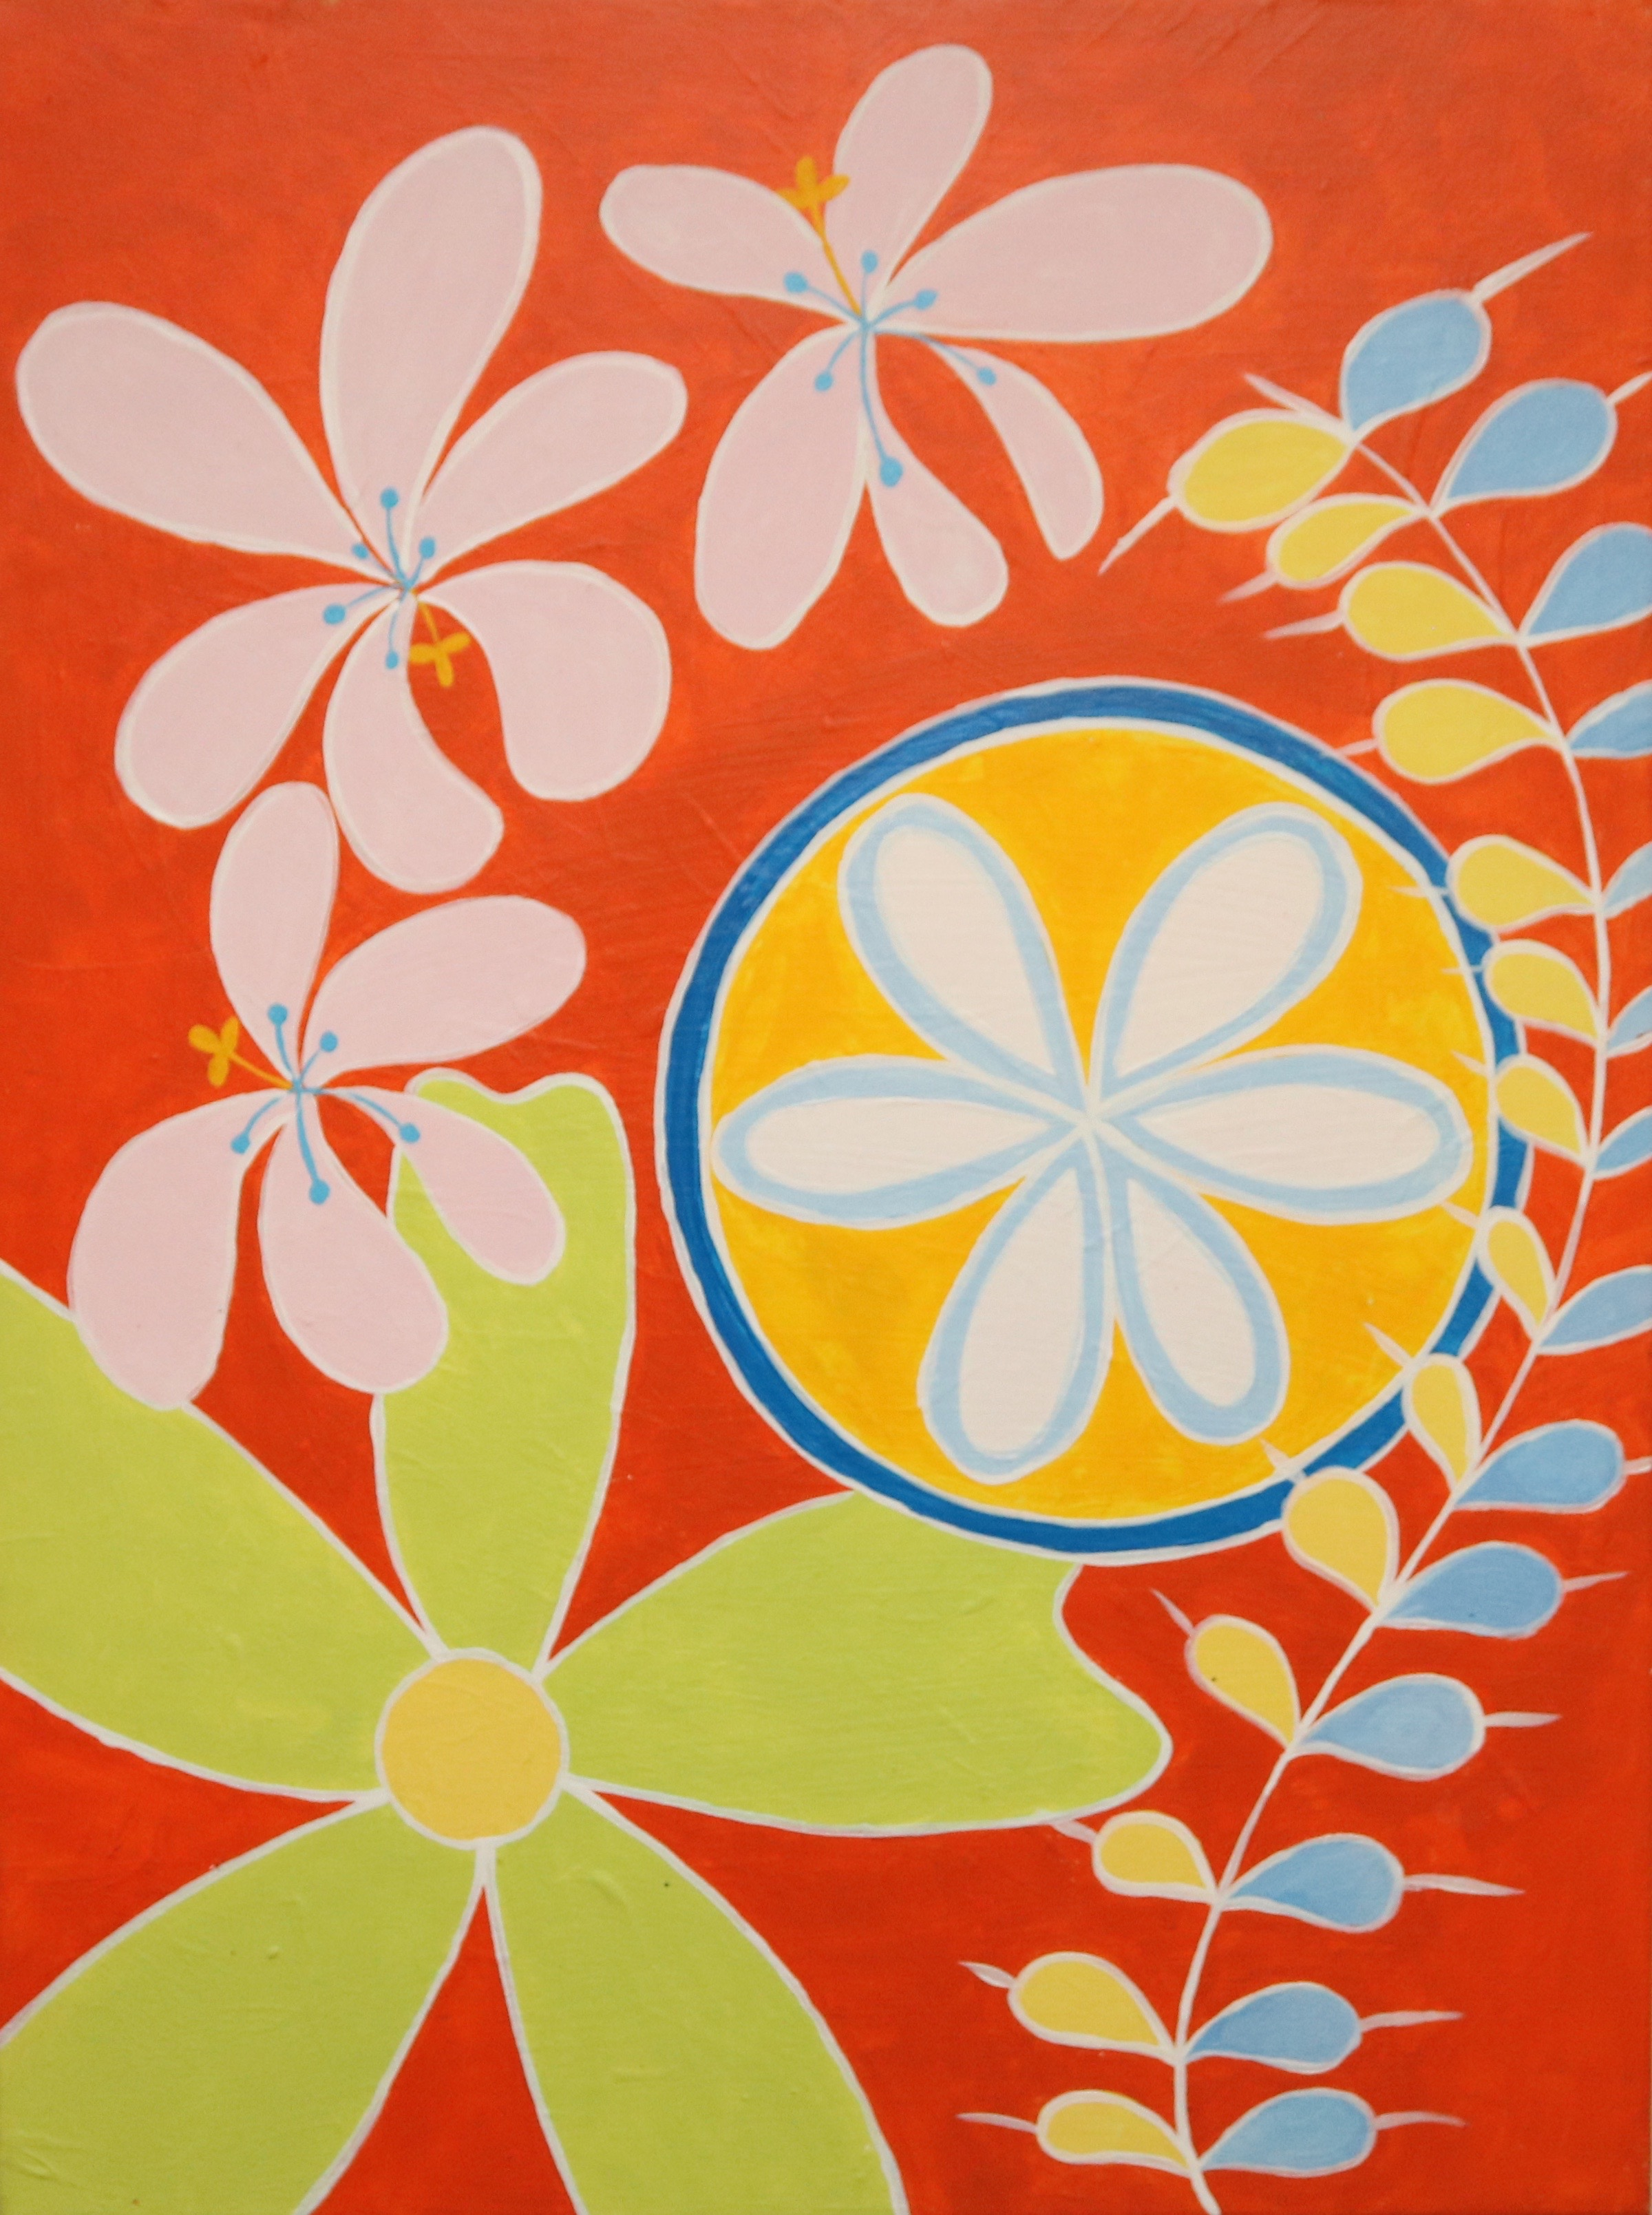 Painted by Meagan Jain for the Hilma af Klint Paint Party Workshop, inspired by  Paintings for the Temple